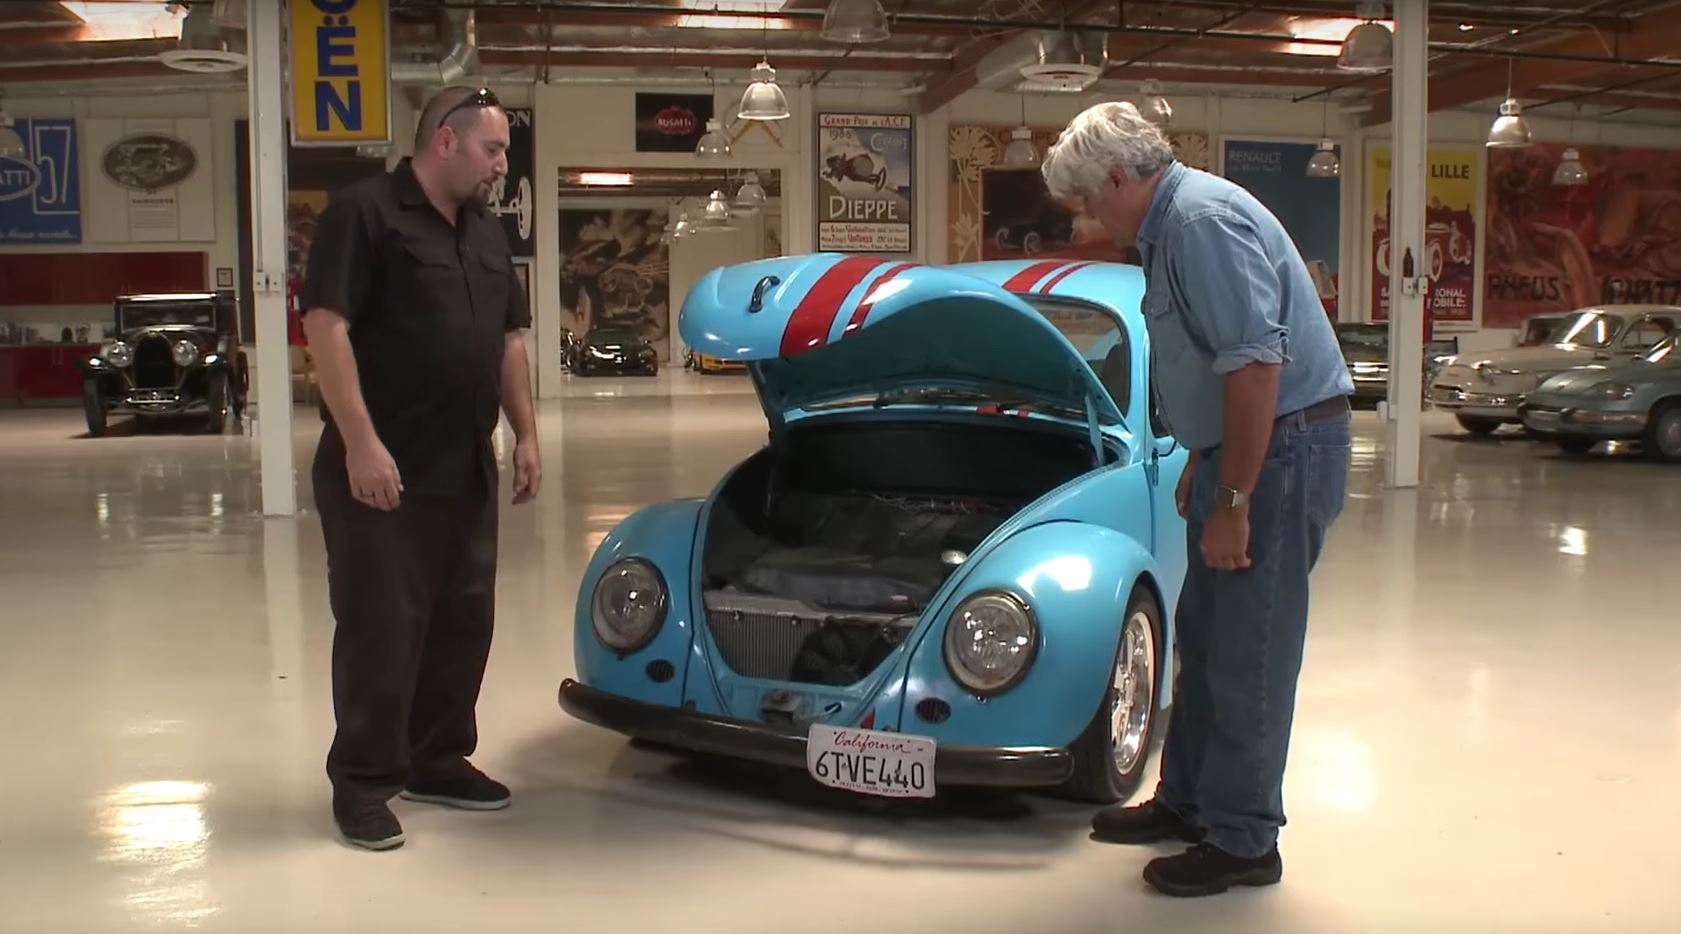 Garage Volkswagen Dieppe Jay Leno Checks Out Vw Beetle With Rx 7 Rotary Engine Autoevolution